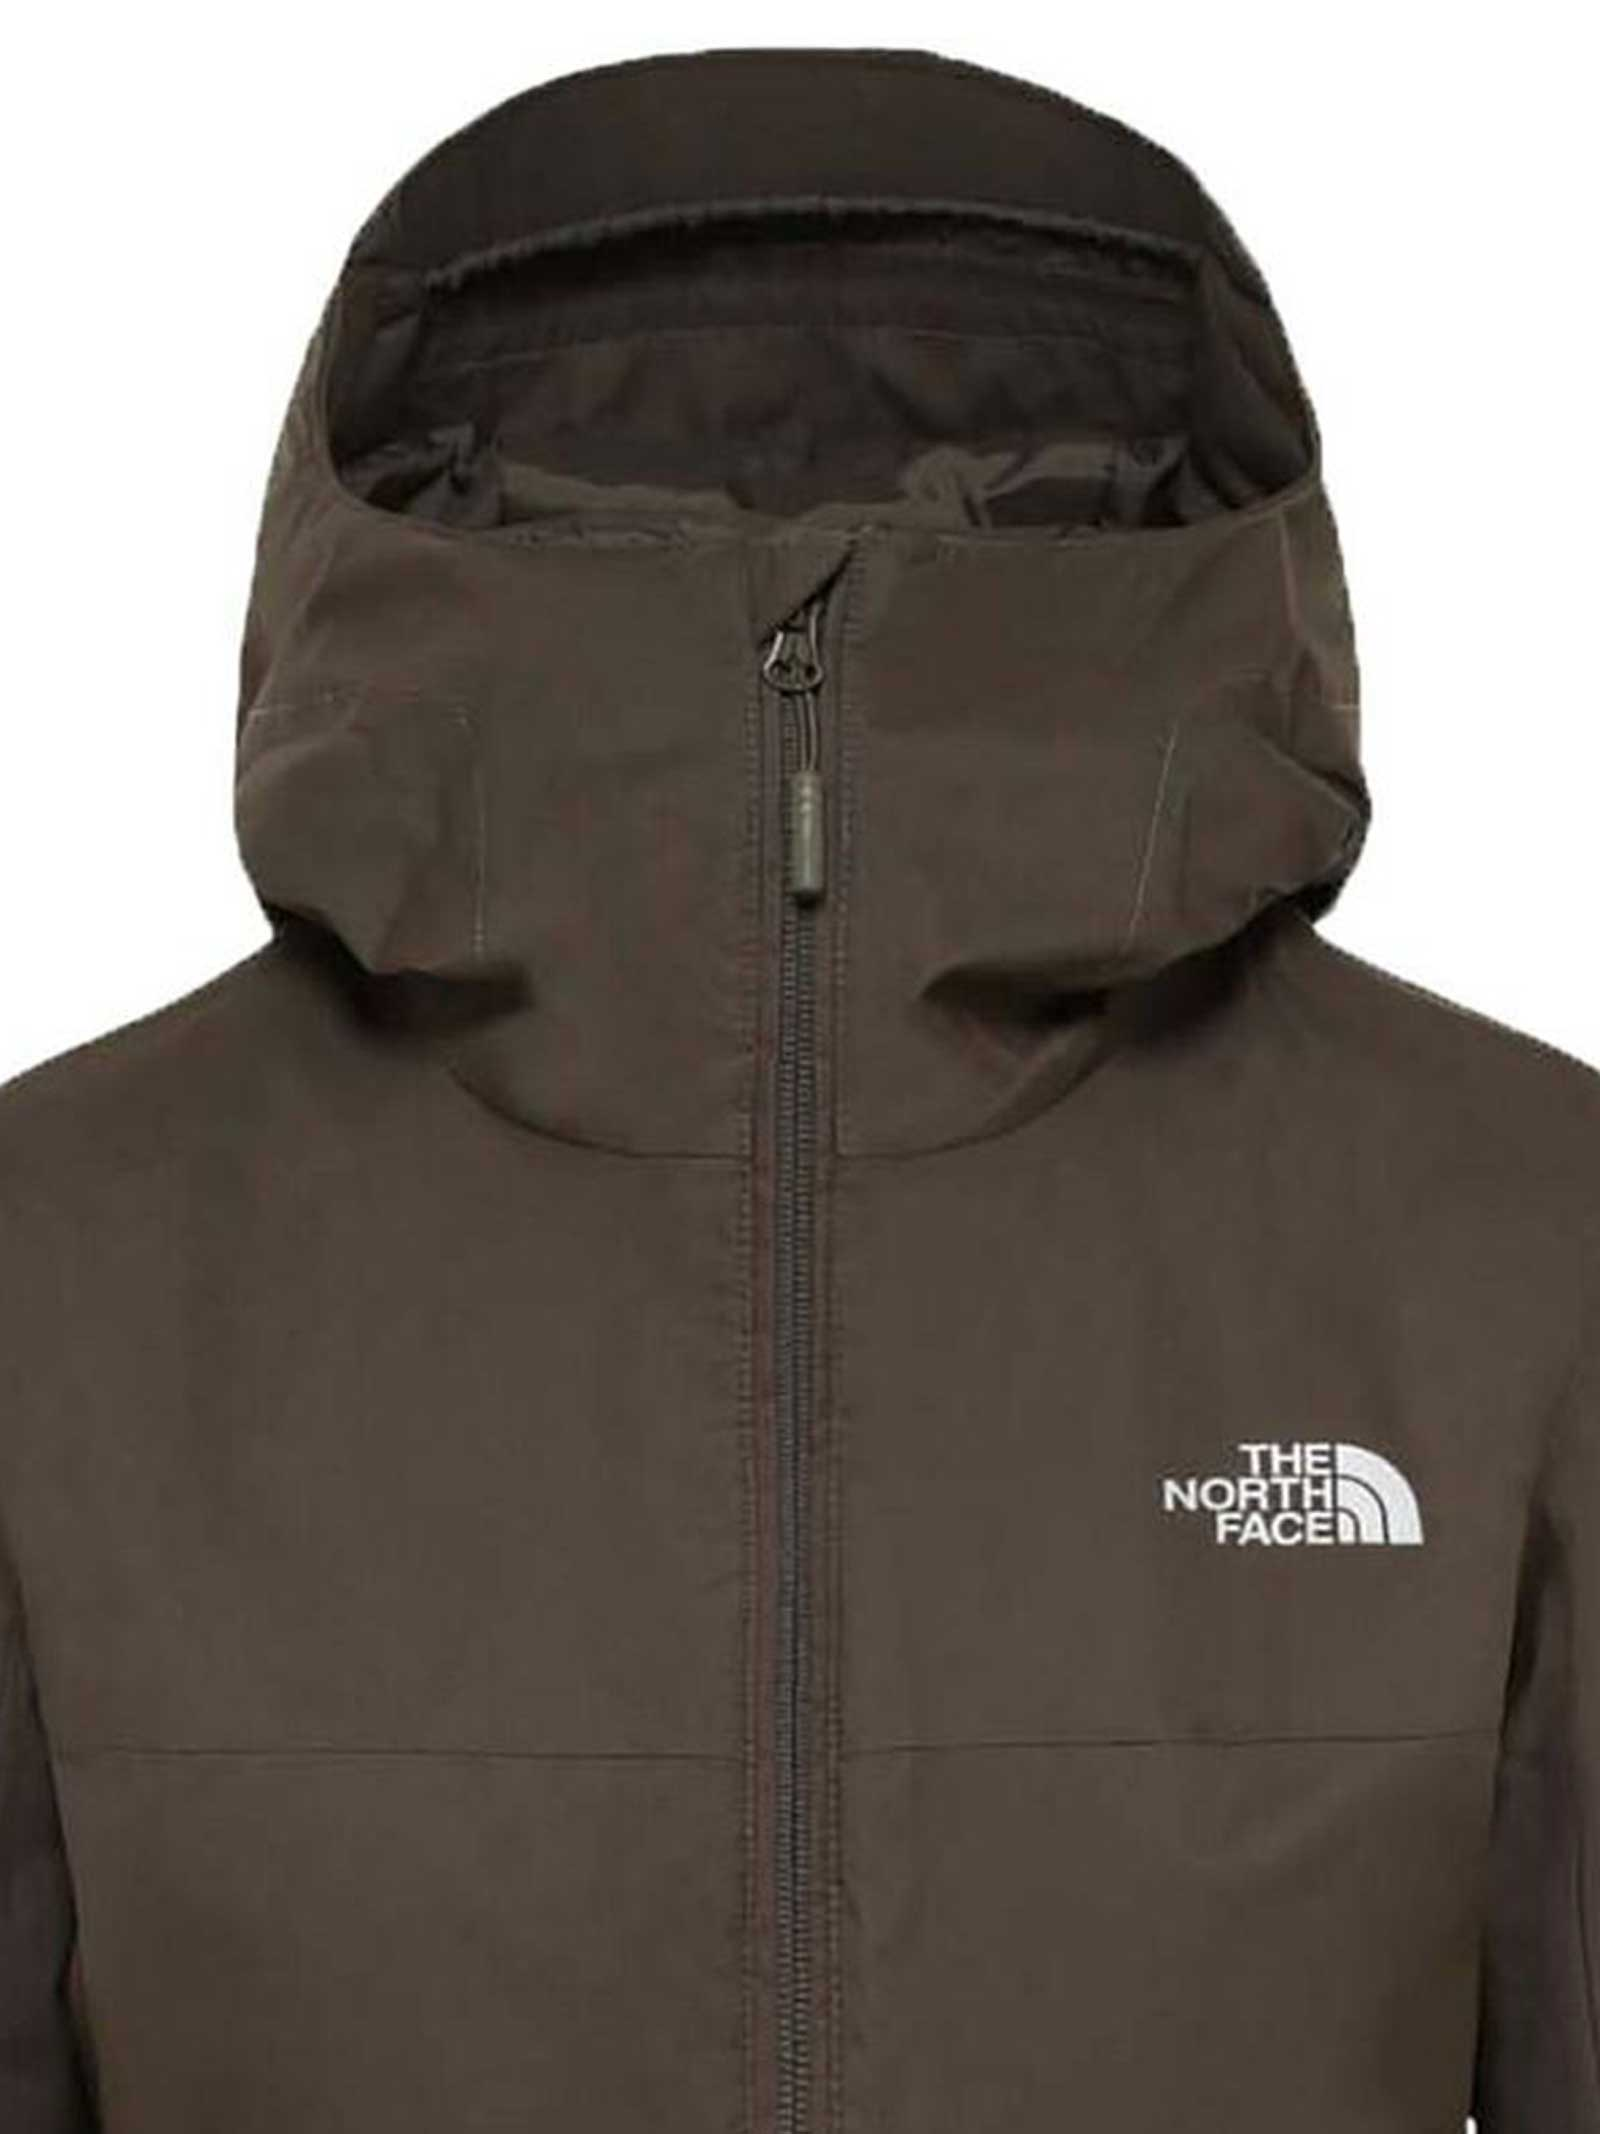 GIUBBOTTO THE NORTH FACE THE NORTH FACE   Giubbotto   NF0A3Y1J21L